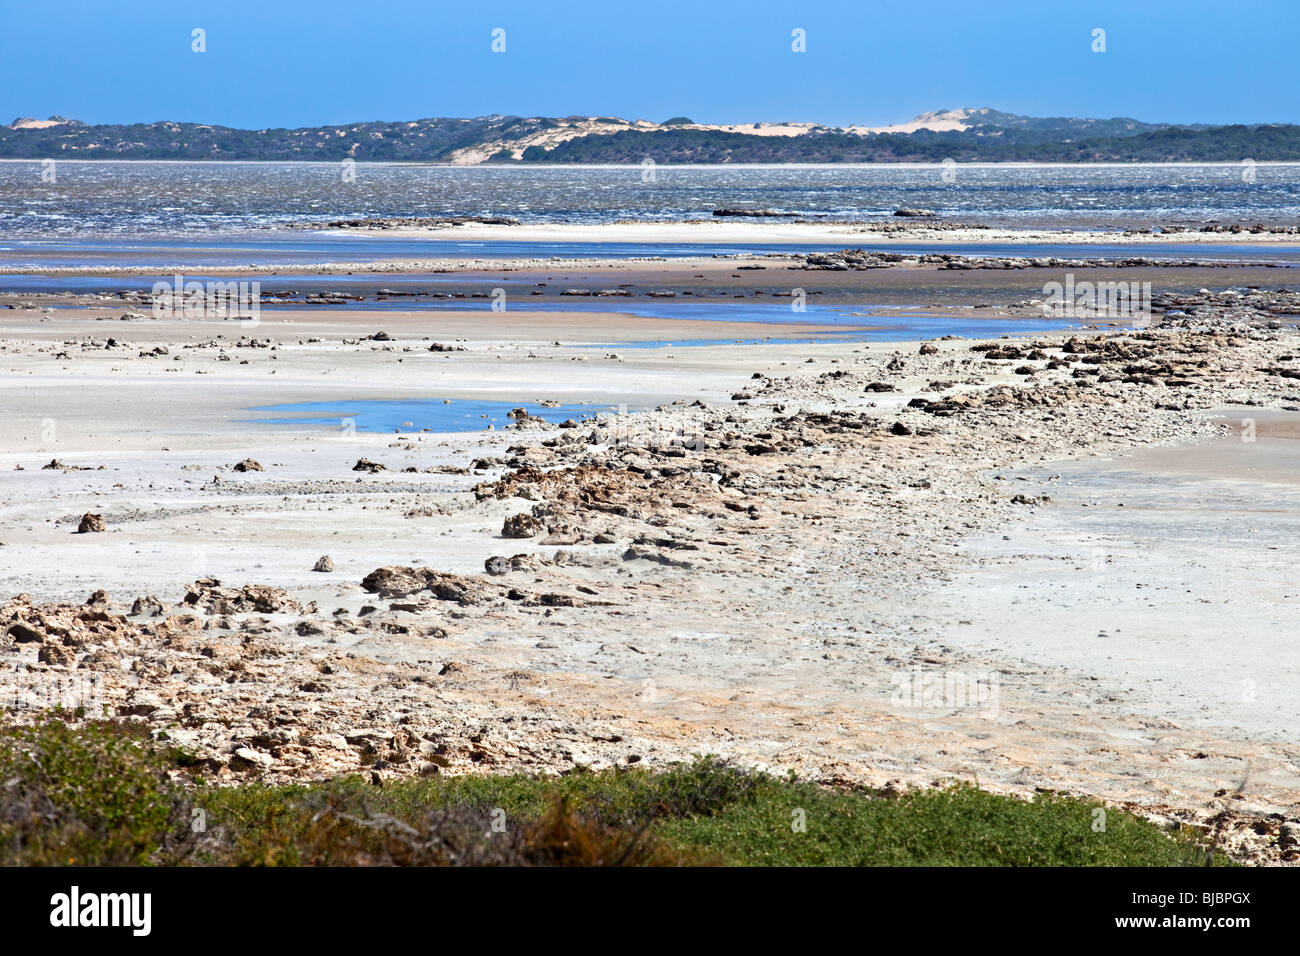 Coorong National Park, South Australia Stock Photo